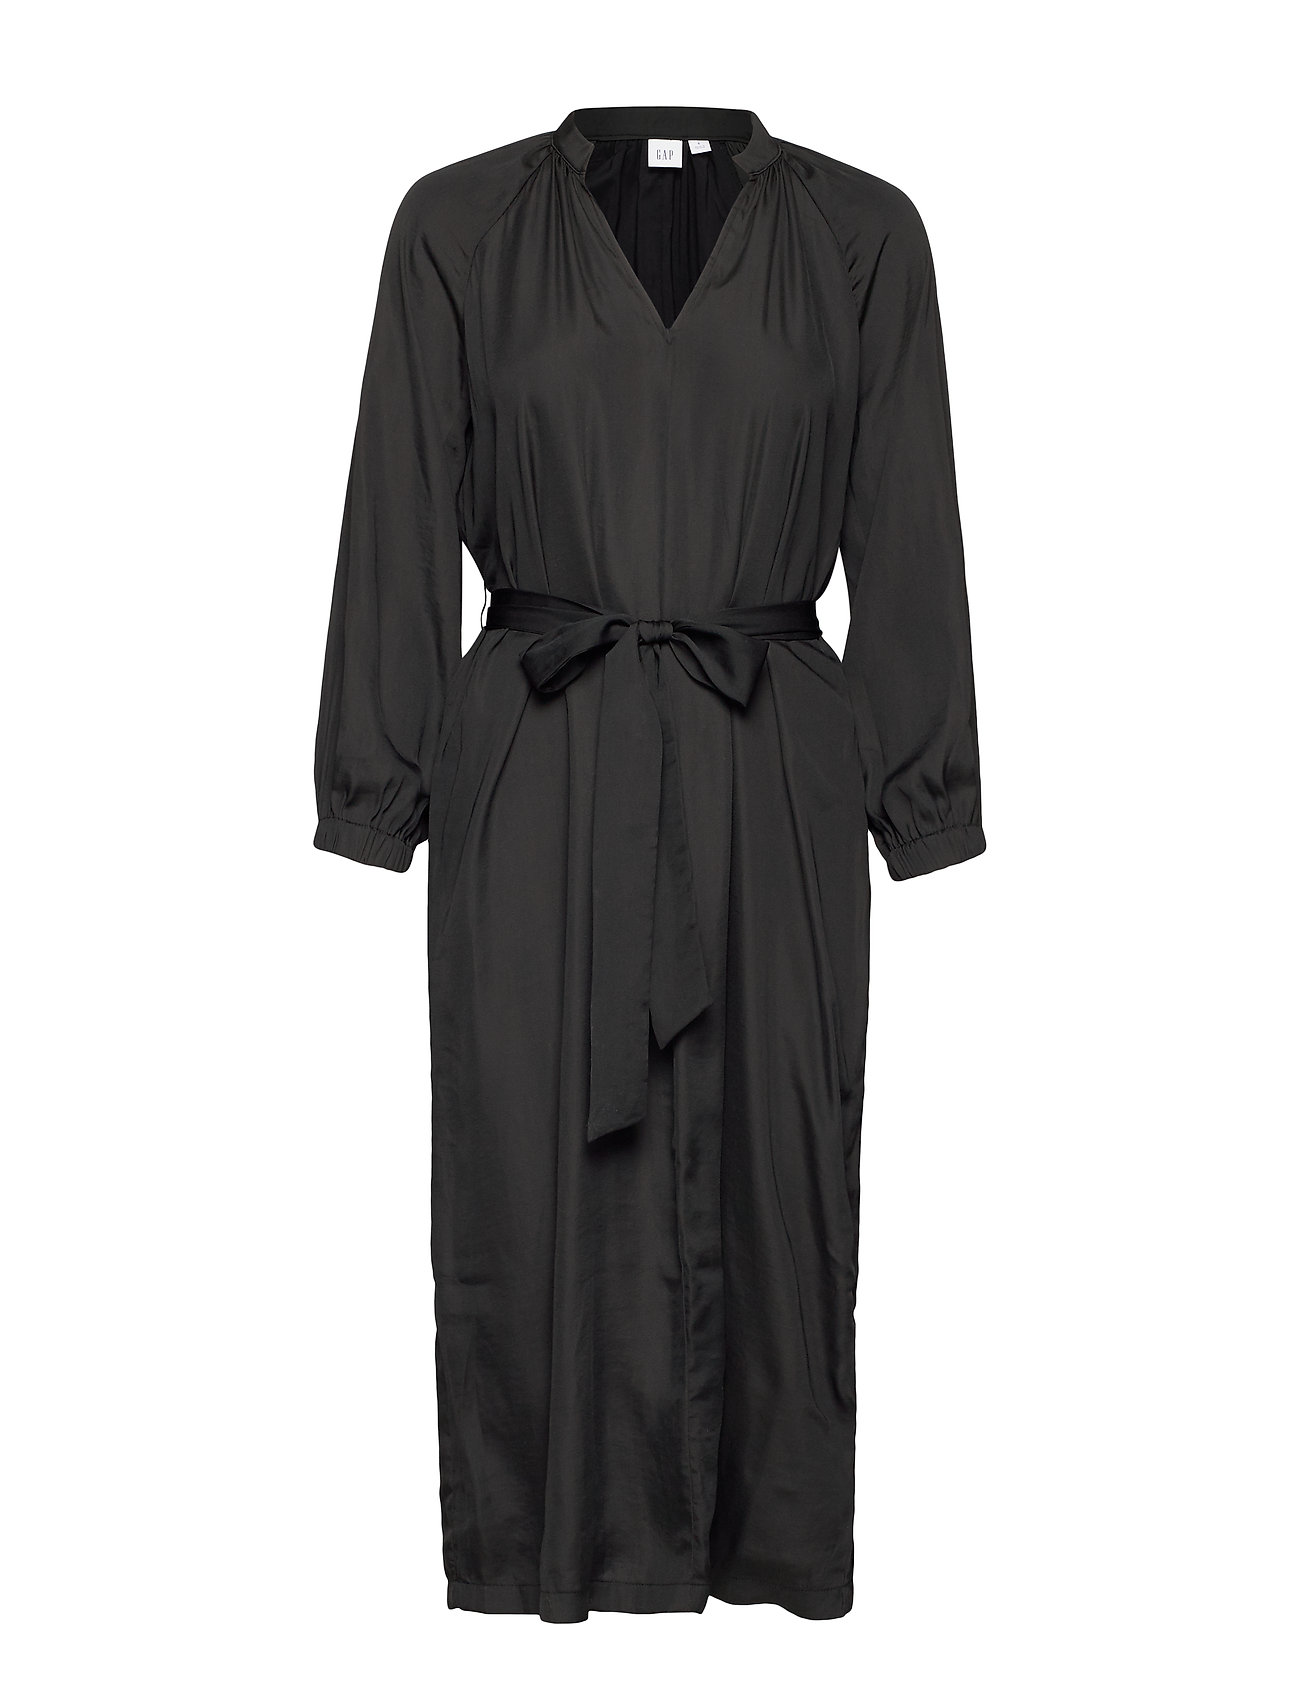 GAP Split-Neck Midi Dress - TRUE BLACK V2 2